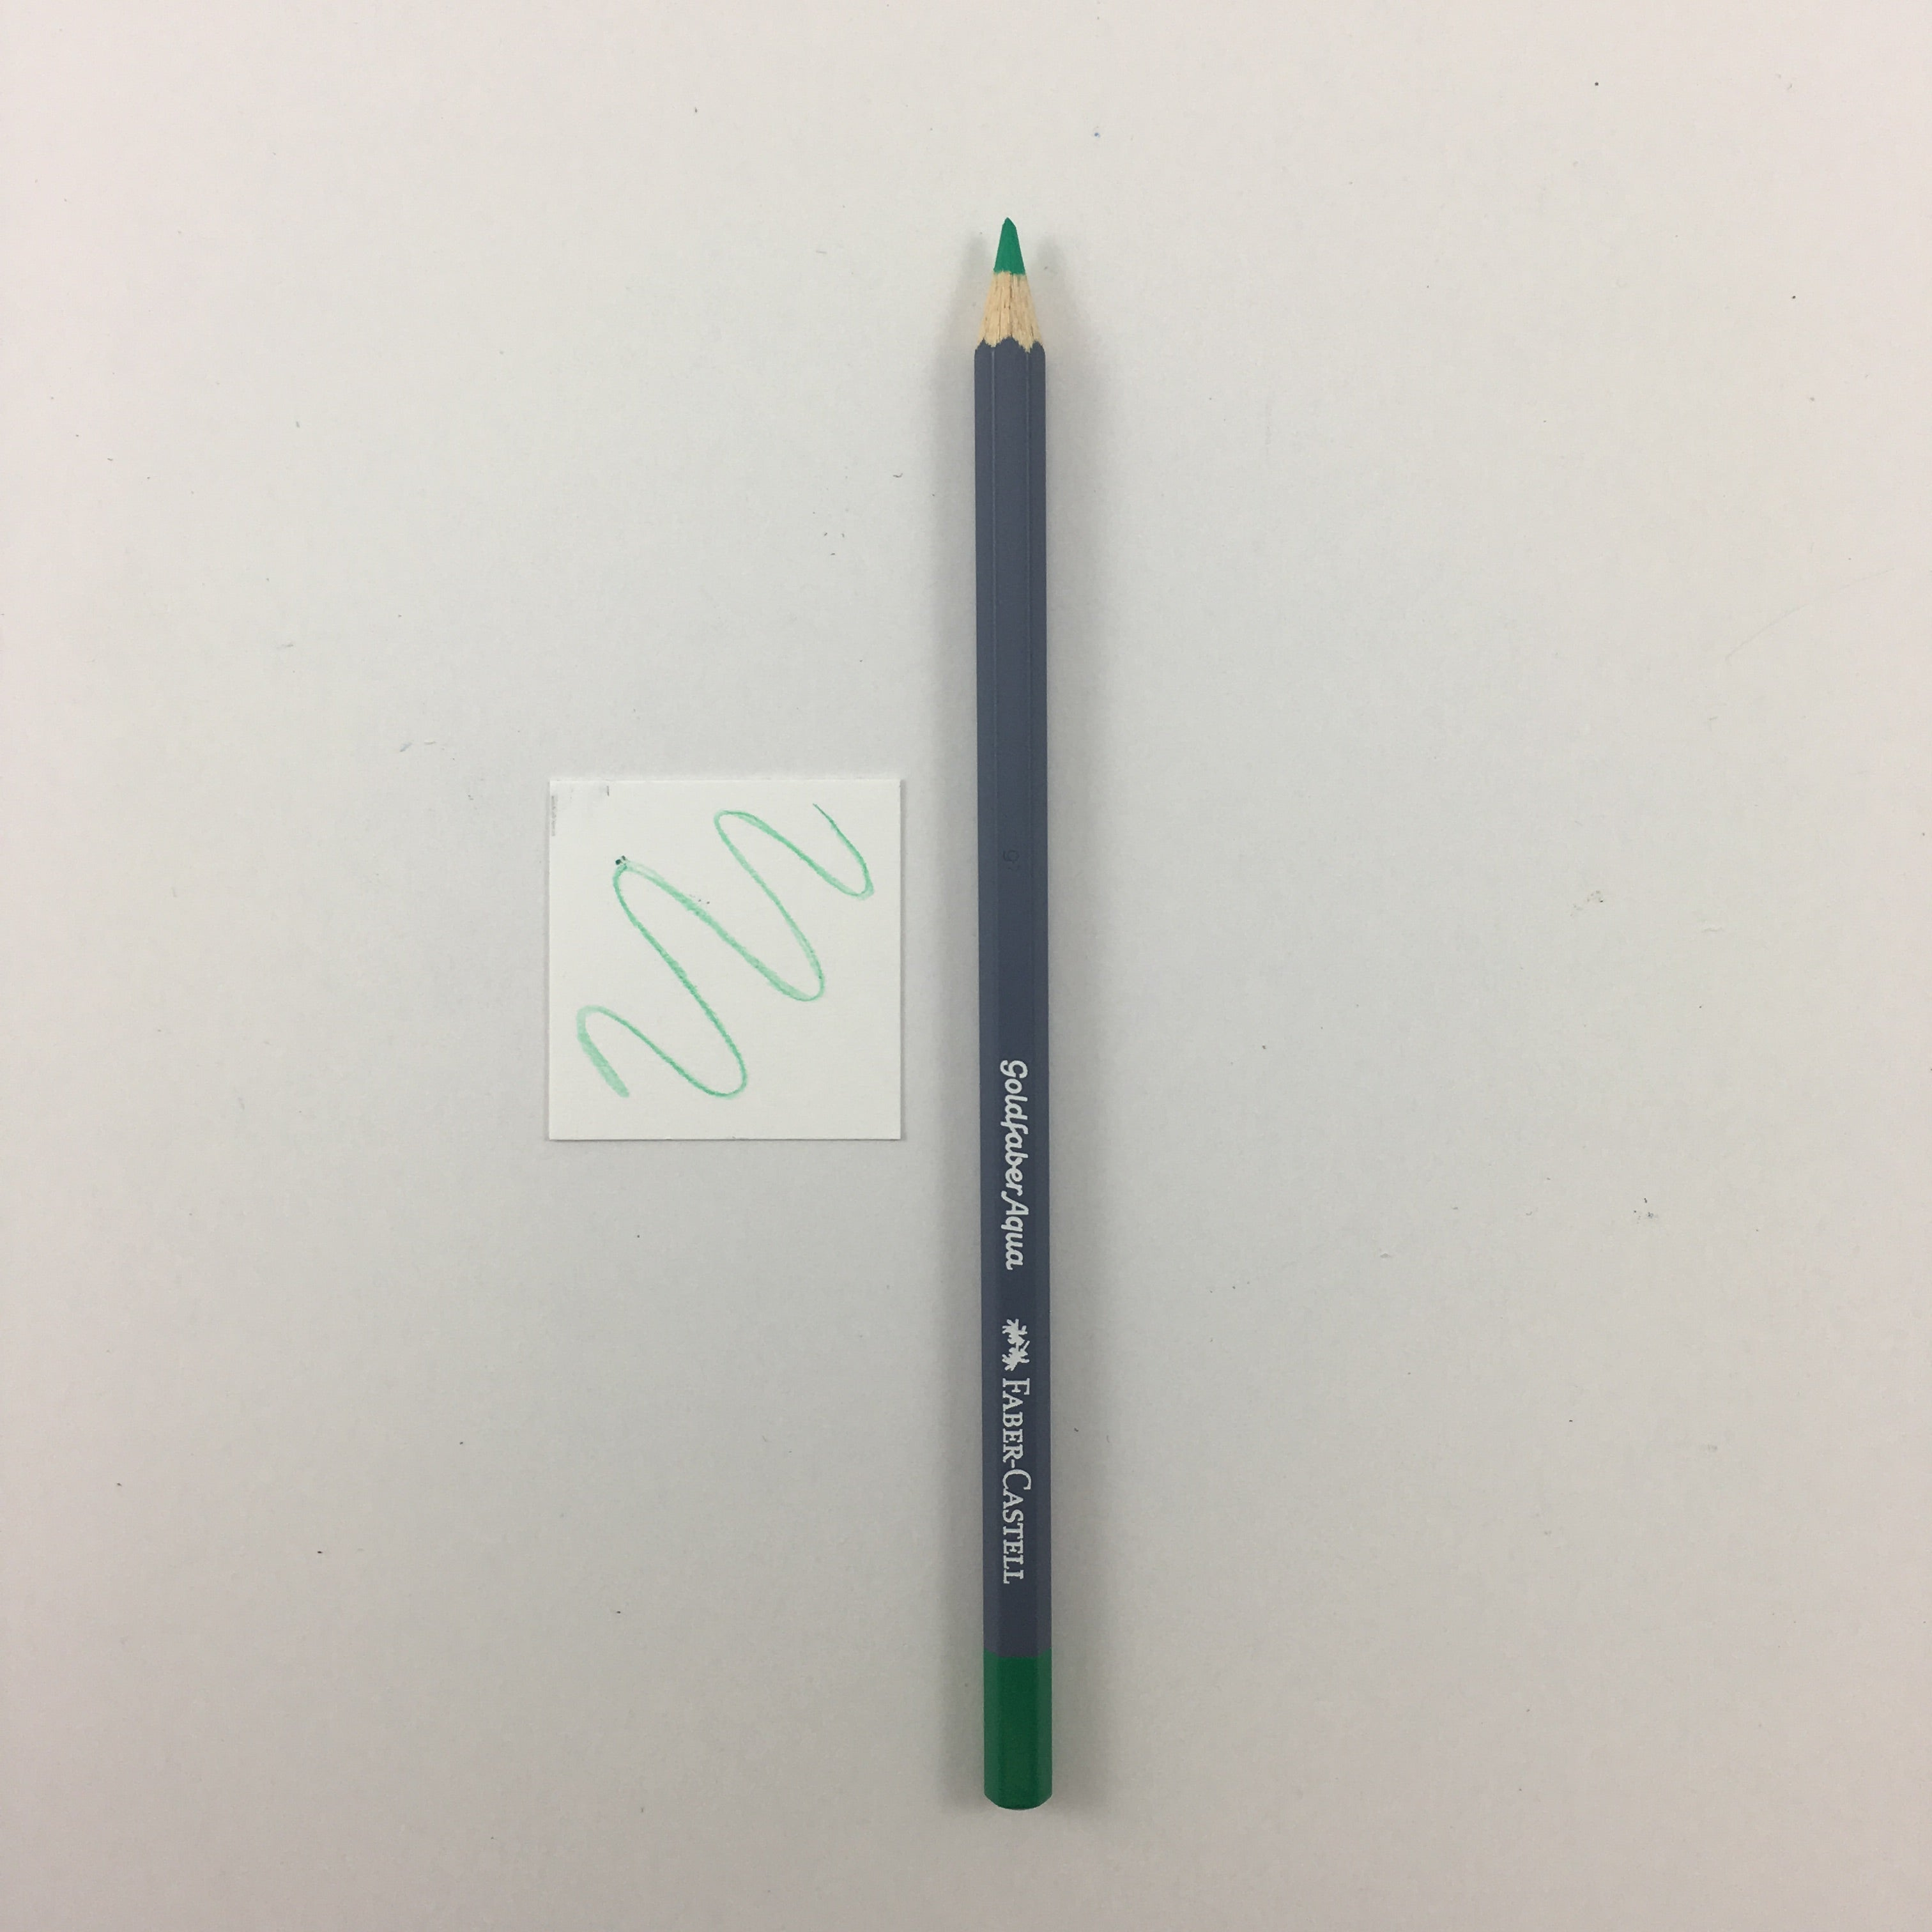 Faber-Castell Goldfaber Aqua Watercolor Pencils - Individuals - 162 - Light Pthalo Green by Faber-Castell - K. A. Artist Shop